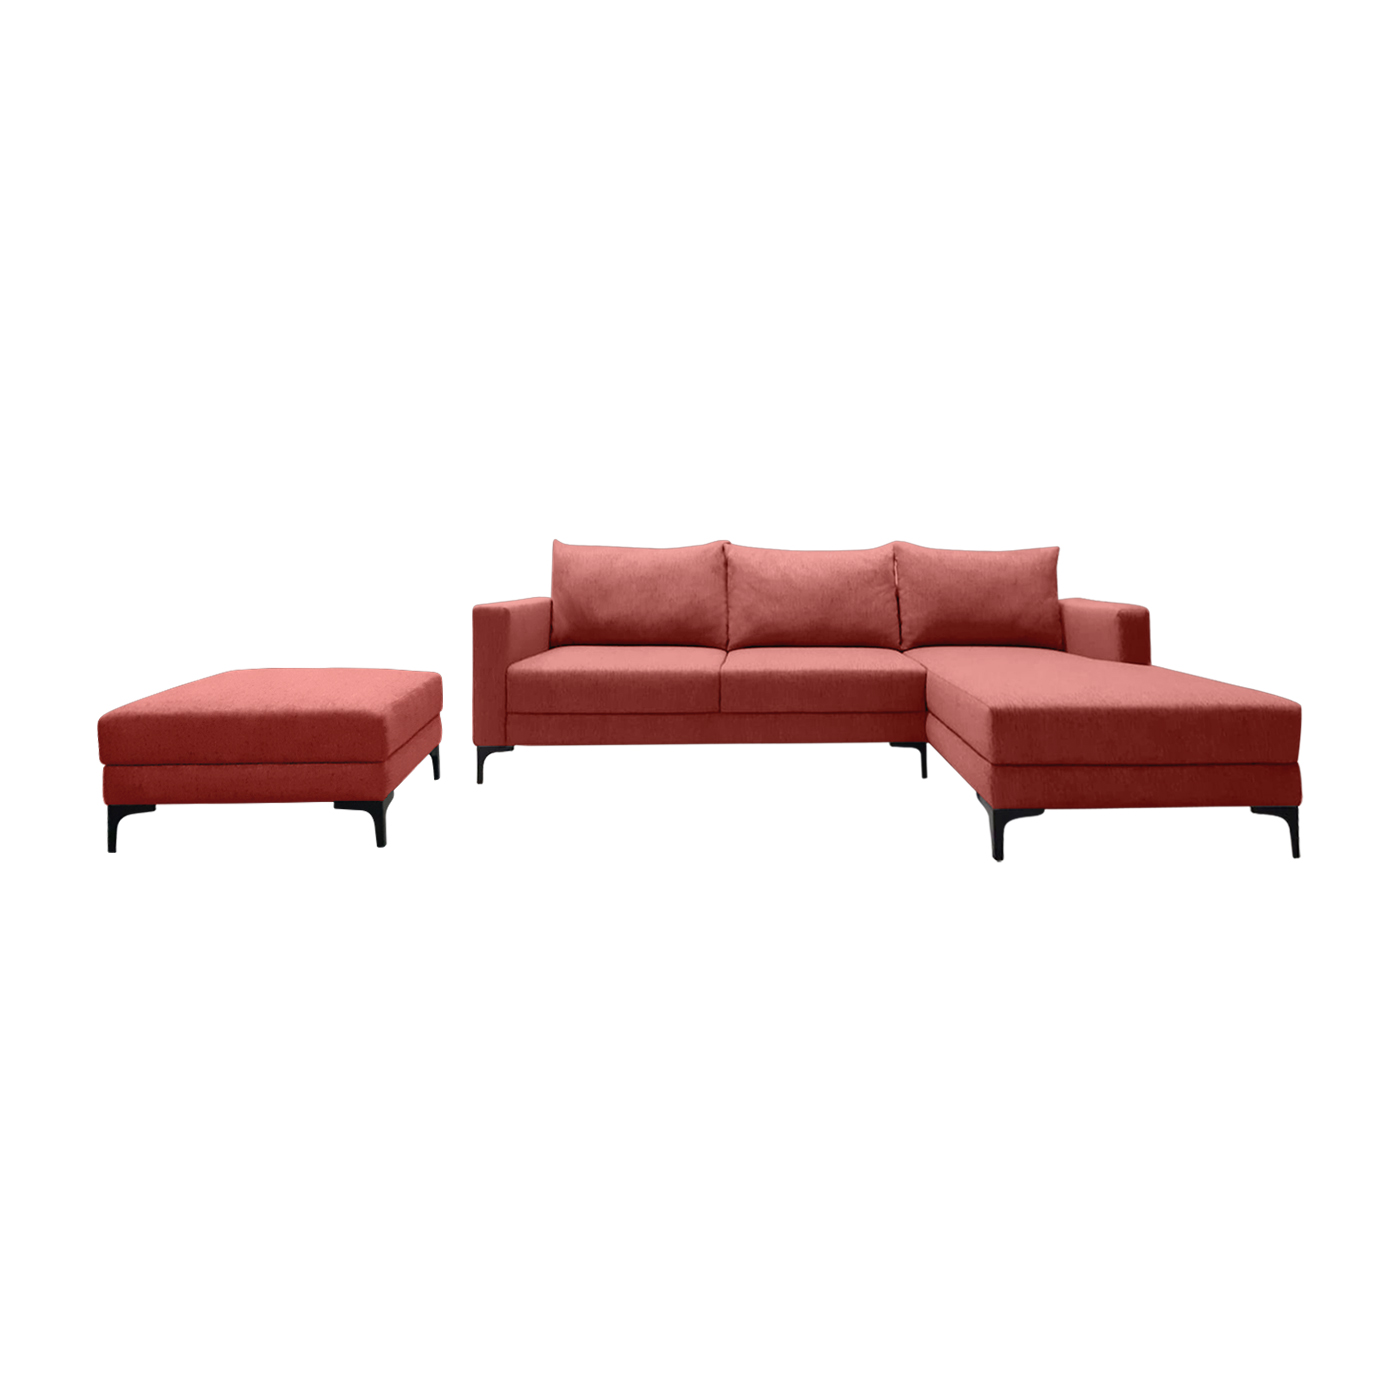 Smithfield Red Sofa & Chaise (Left) With Ottoman